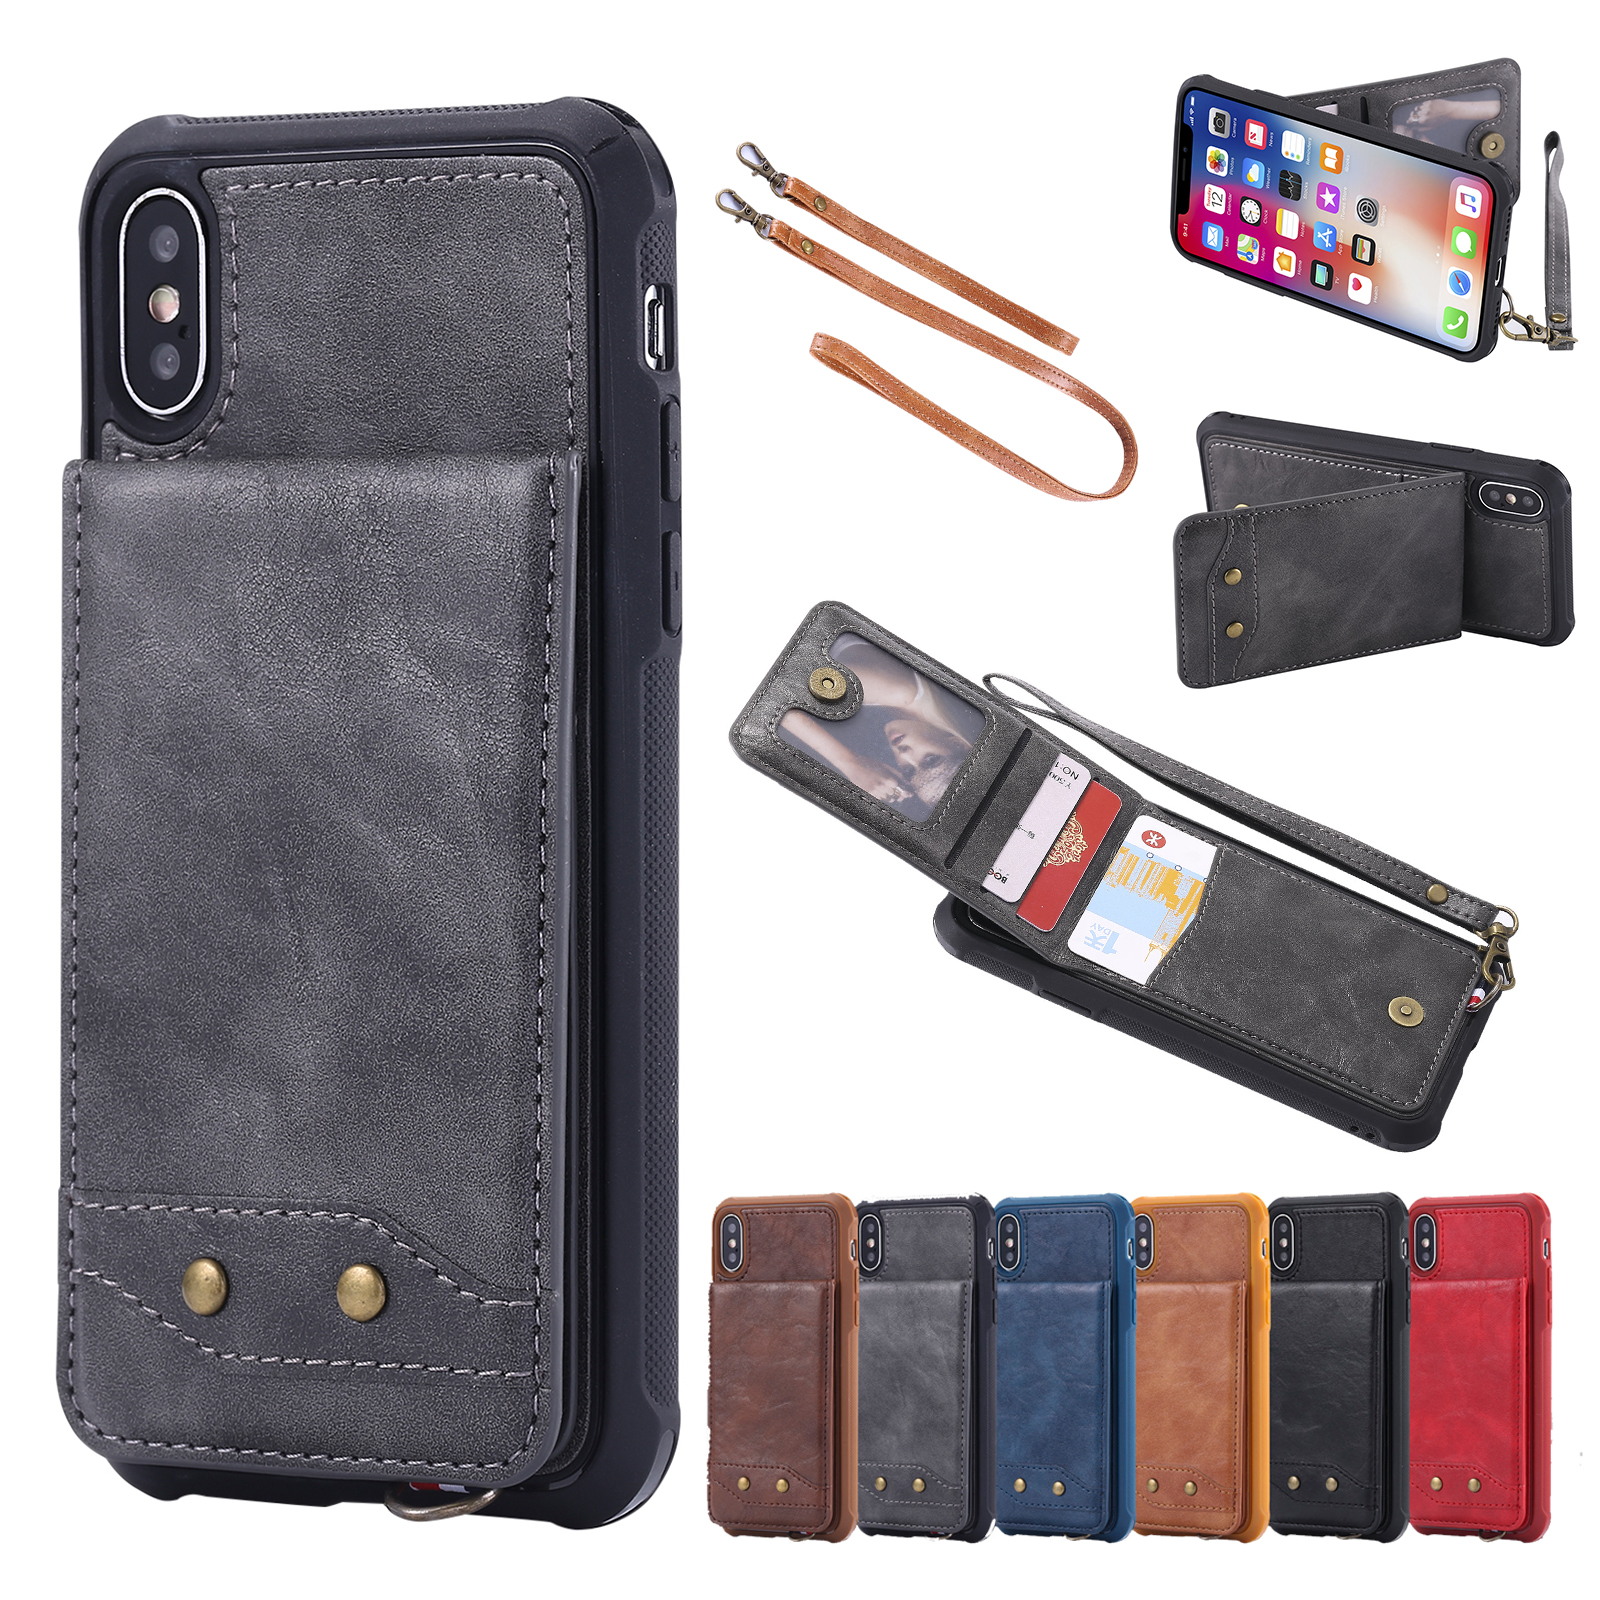 super popular d2e88 267bc Details about Leather Credit Card Holder W/Strap Wallet Case Cover For  iPhone XS Max XR 6/7/8+